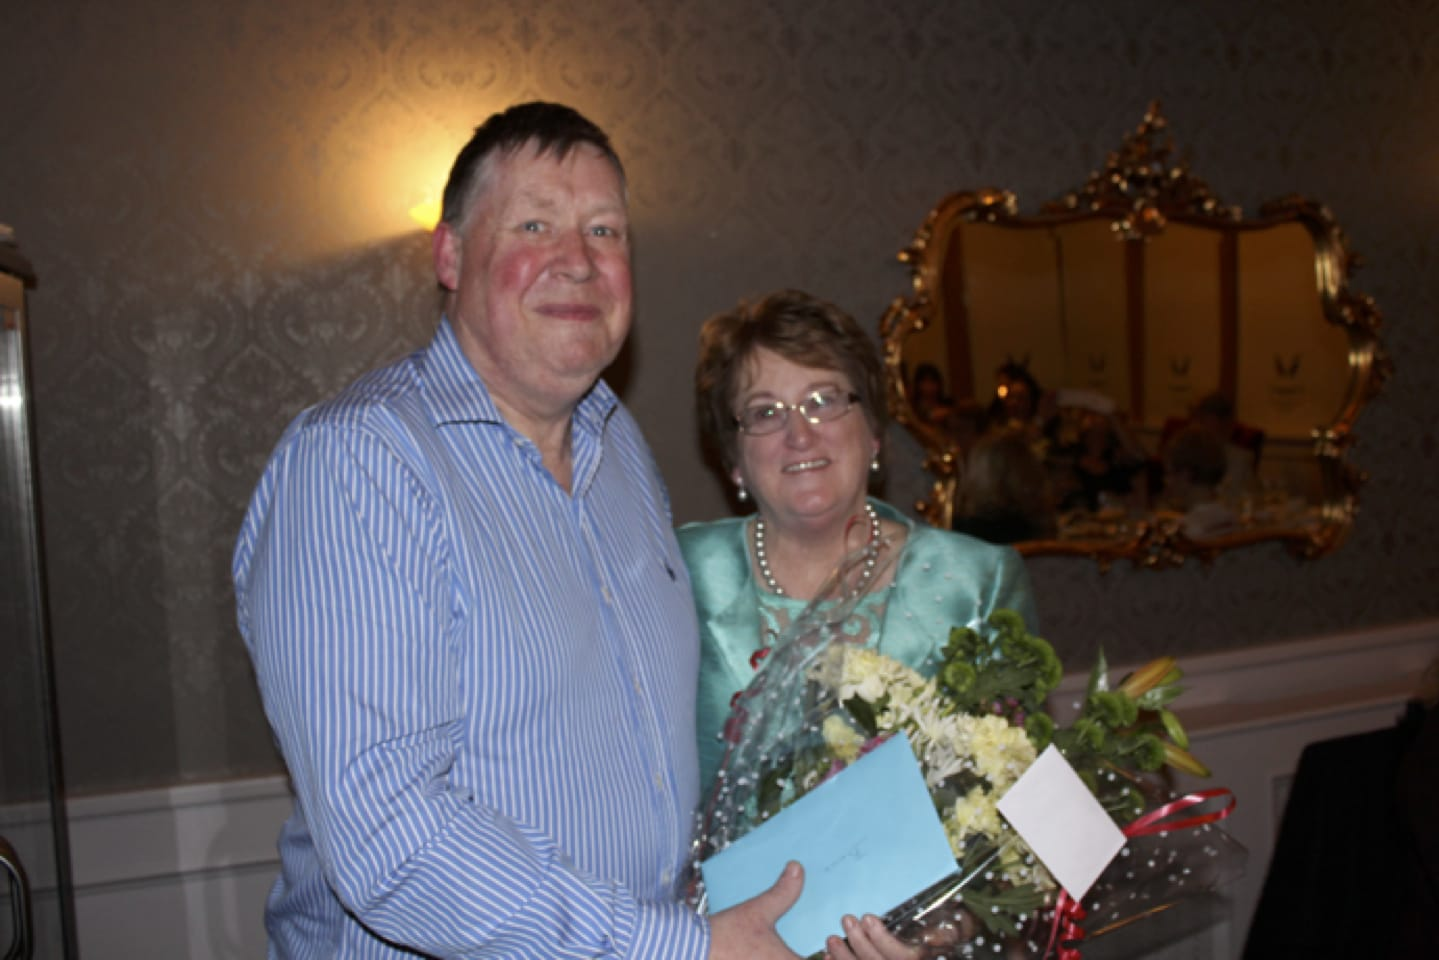 Feb 2017: Donal Enright presenting Bernie Flynn with a Bouquet of flowers at her recent Retirement Party